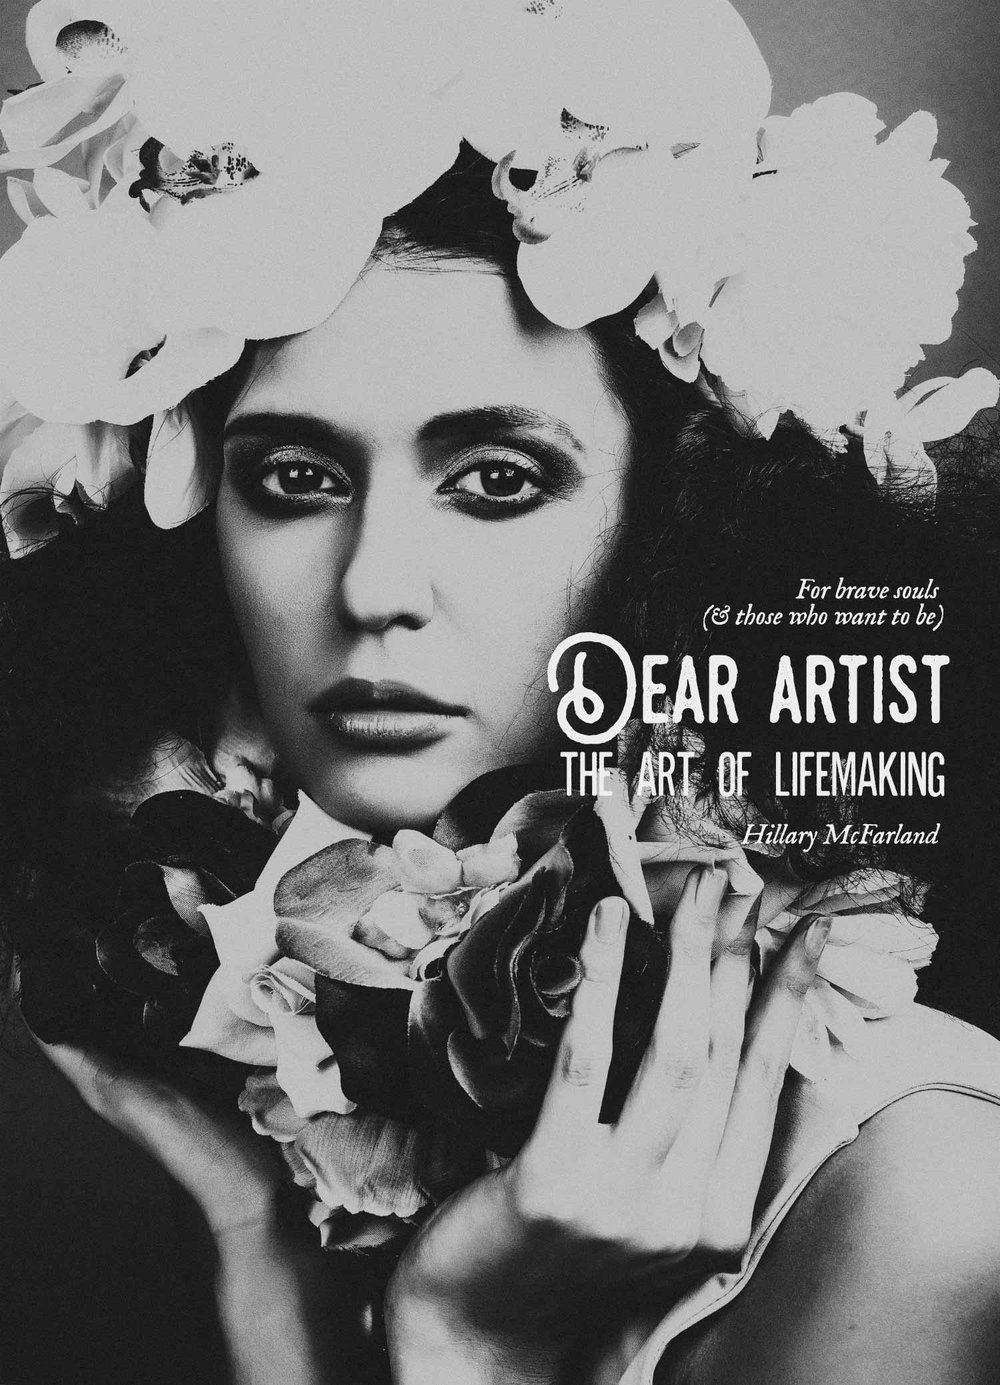 Dear Artist: The Art of Lifemaking by Hillary McFarland. Your life is your art, and it's time to heal from the self-sabotage, scarcity mentality, and shame that shows up whenever you begin something meaningful.